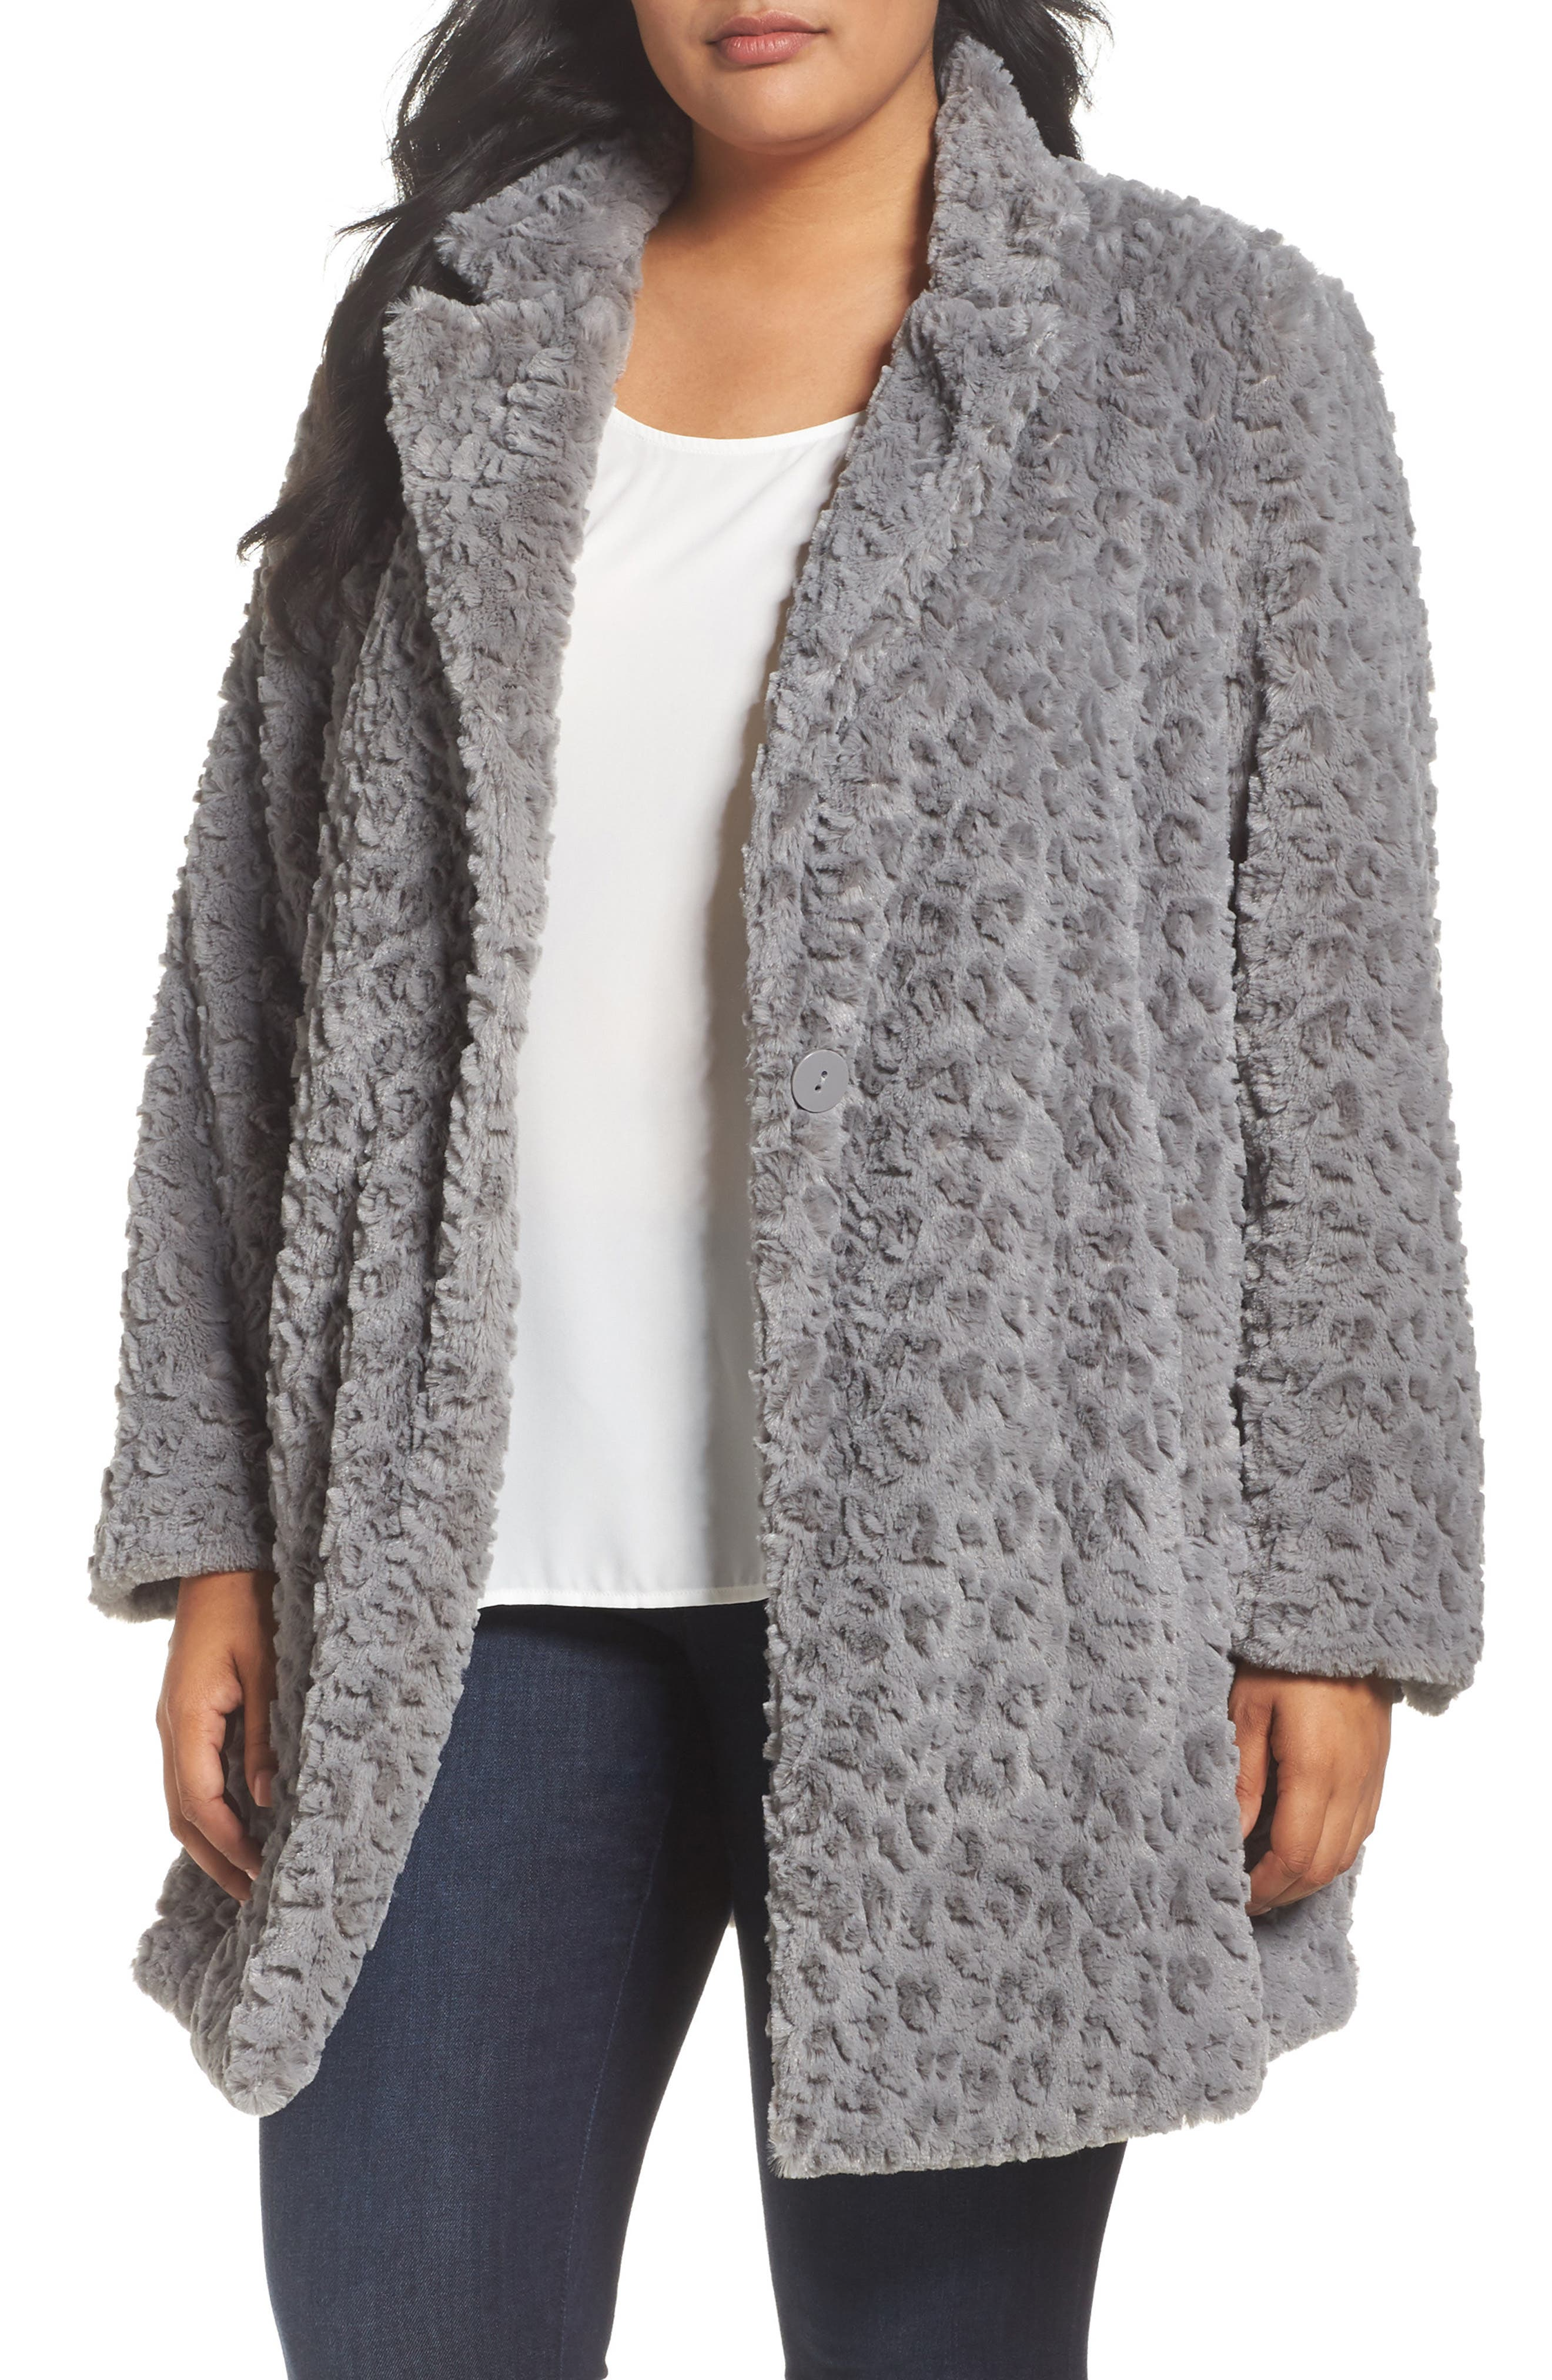 Alternate Image 1 Selected - Kenneth Cole New York Faux Fur Jacket (Plus Size)